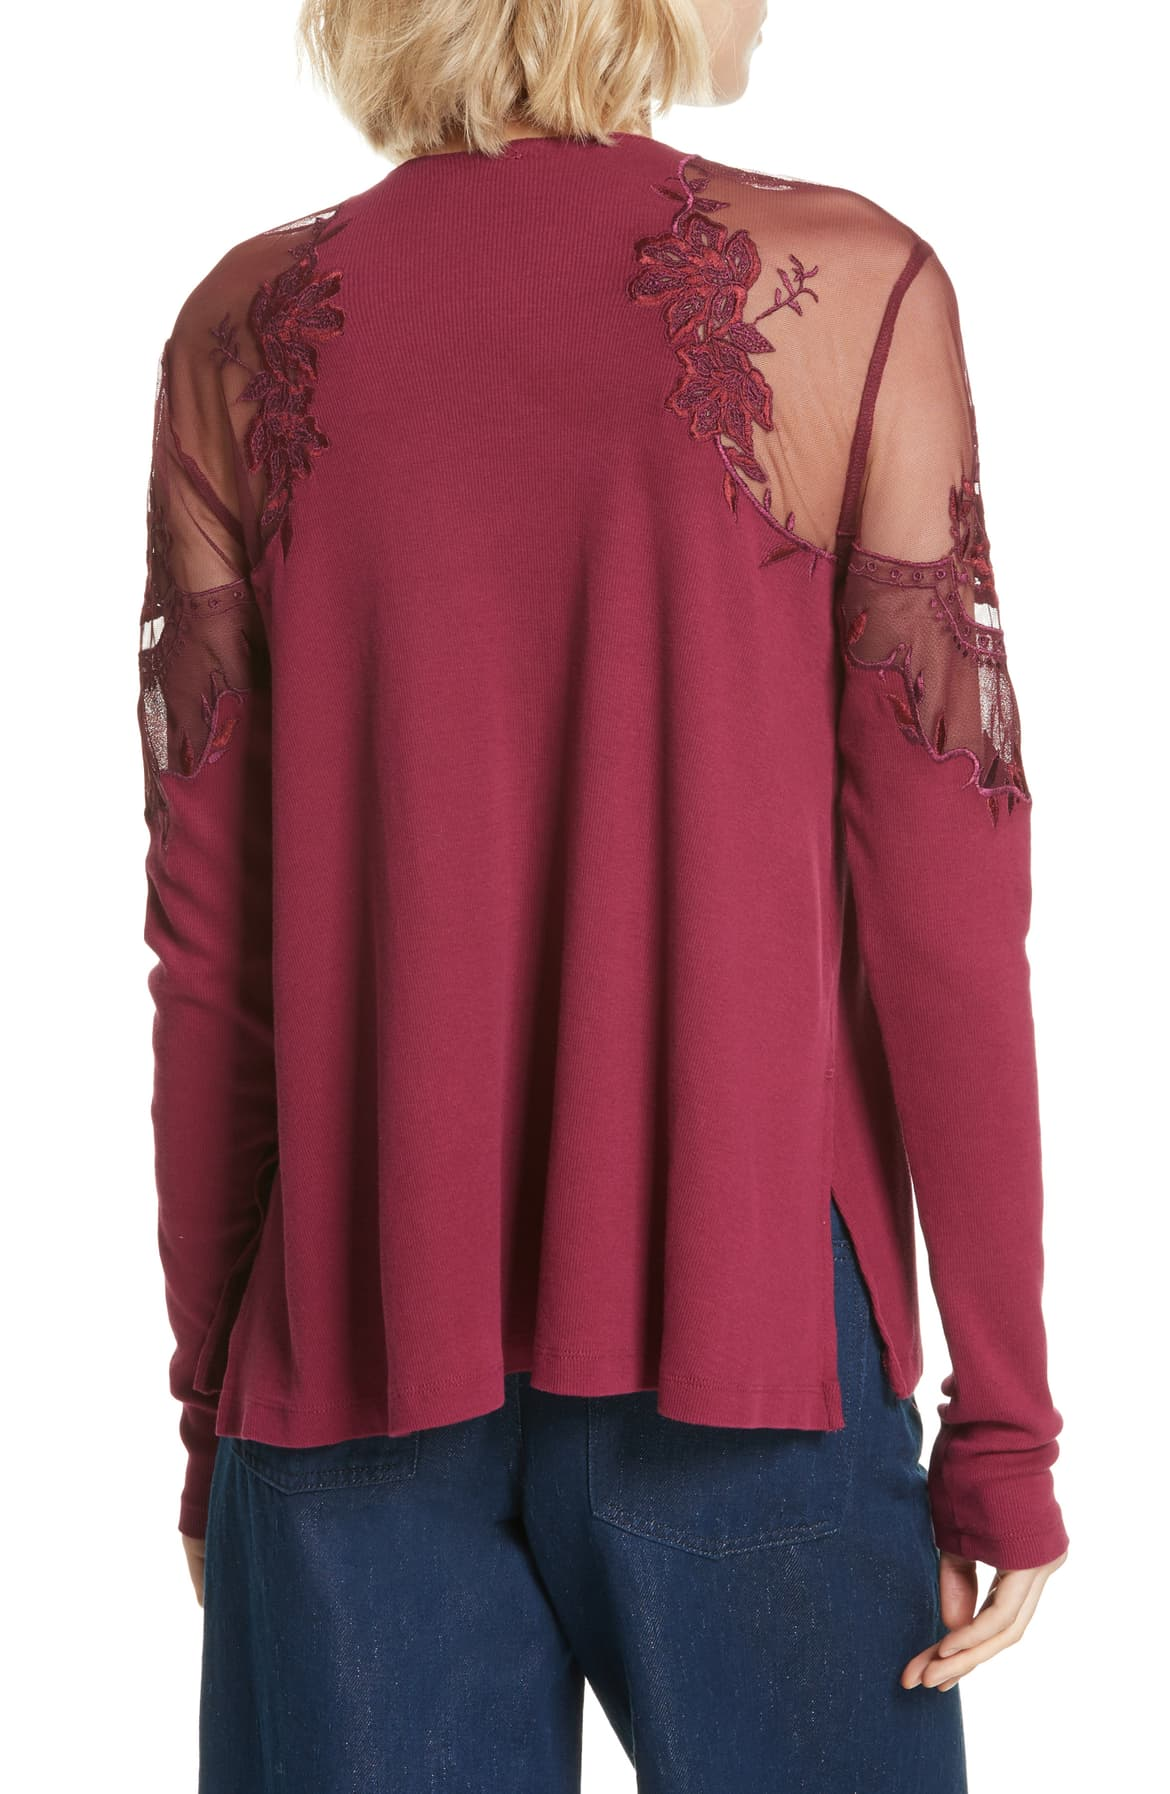 Free People Daniella Embroidered Top - Gear Relapse